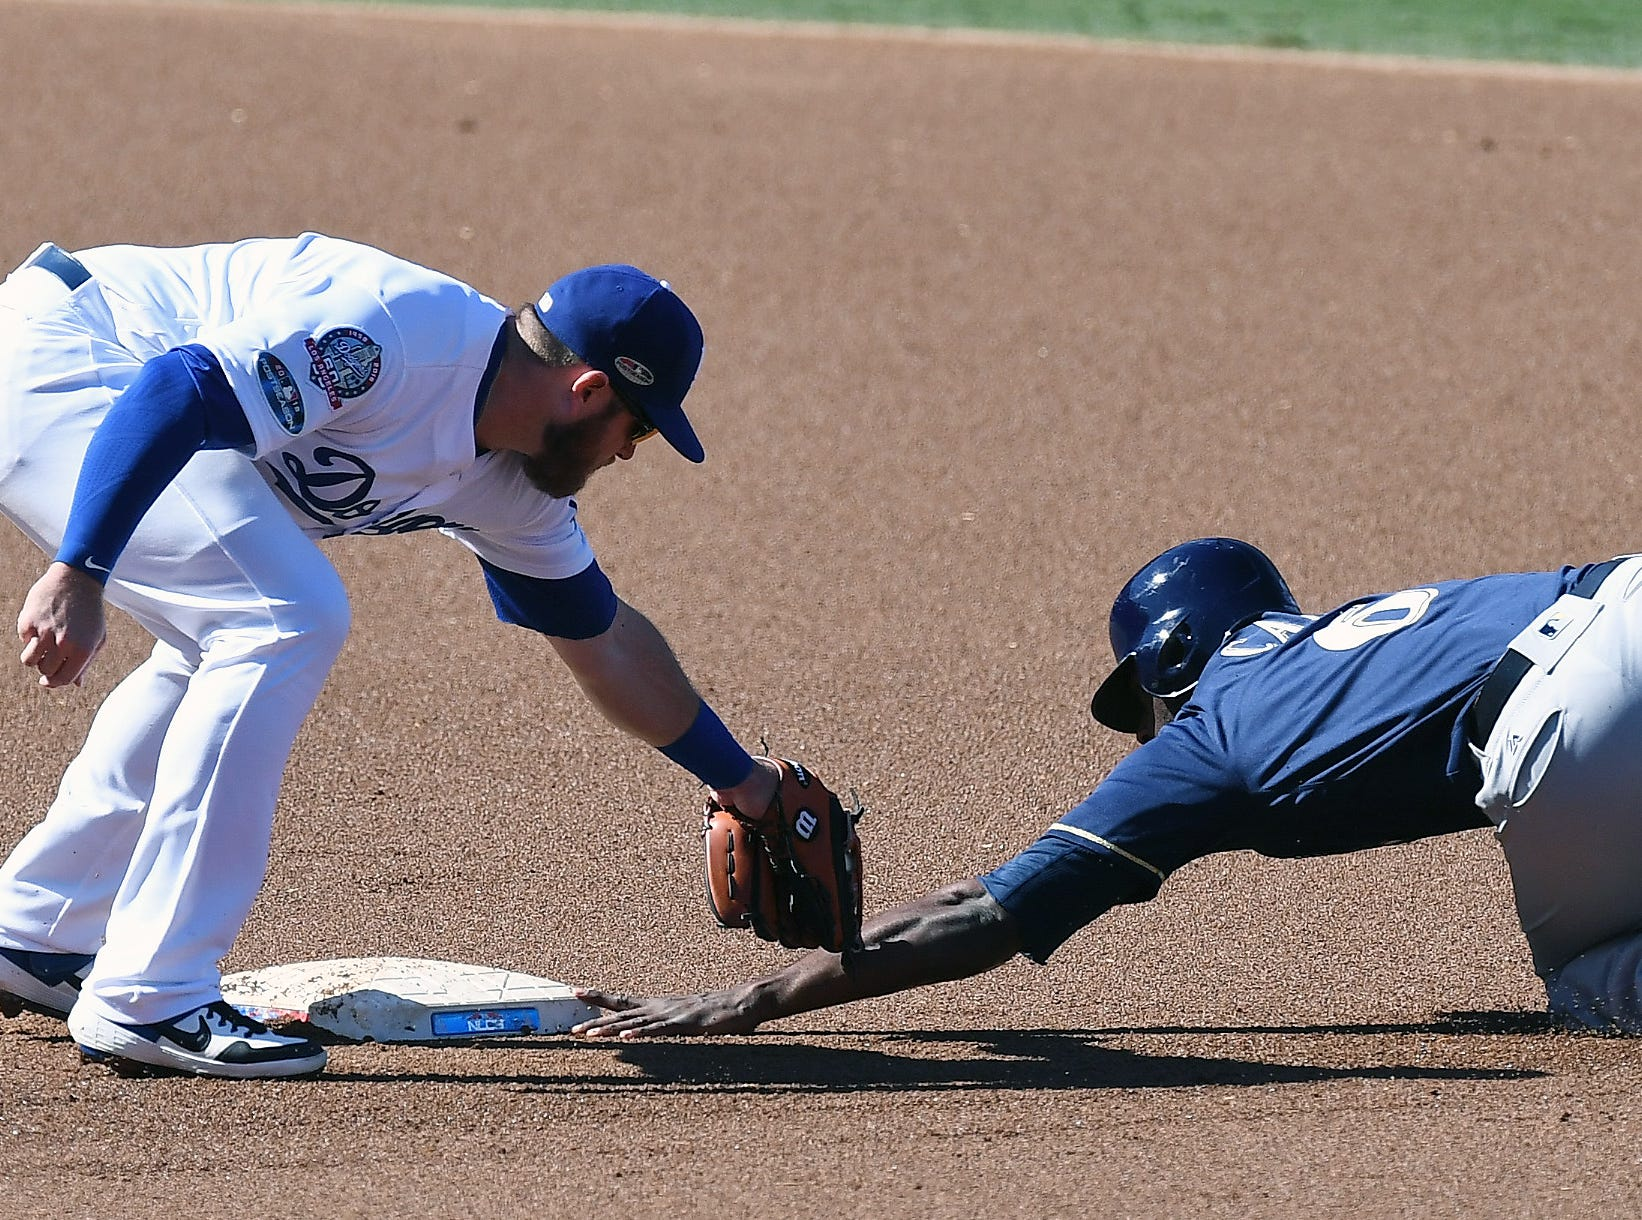 NLCS Game 5: Lorenzo Cain is caught stealing by Dodgers second baseman Max Muncy in the first inning.